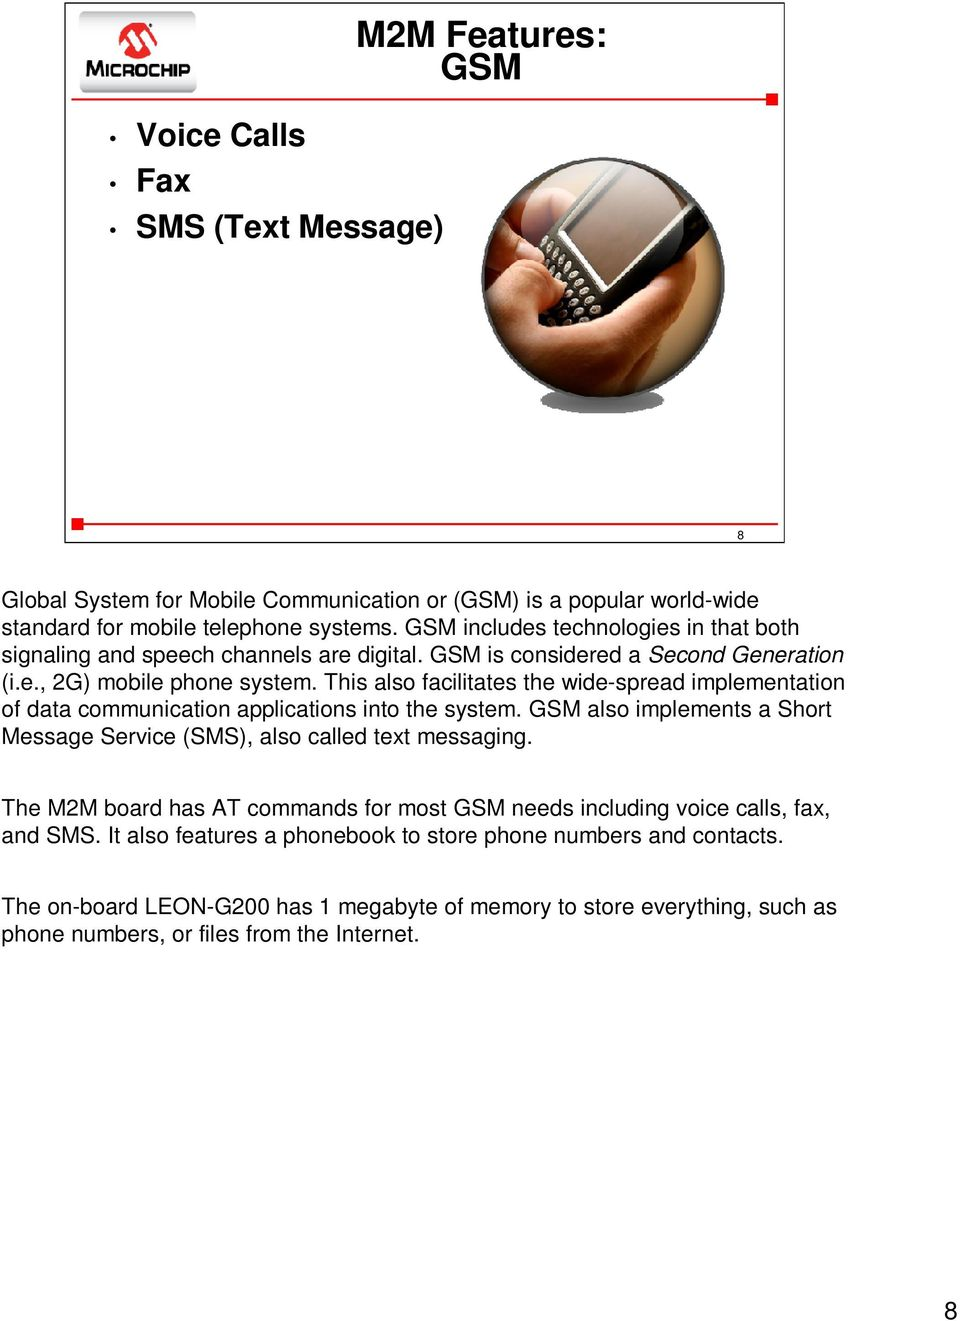 This also facilitates the wide-spread implementation of data communication applications into the system. GSM also implements a Short Message Service (SMS), also called text messaging.